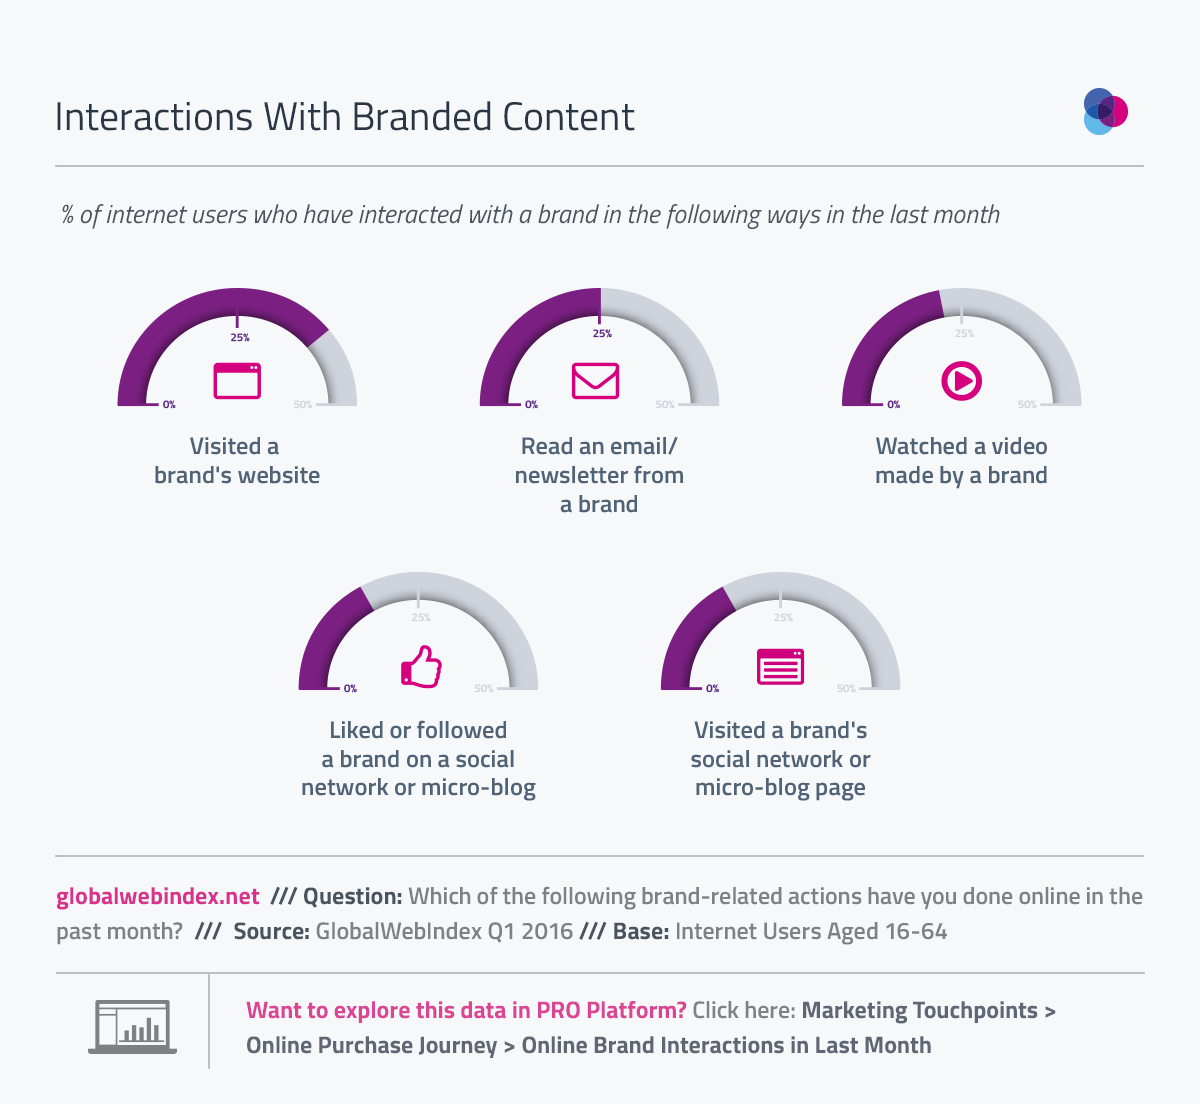 1 in 4 Reading Branded Emails or Watching Brand Videos